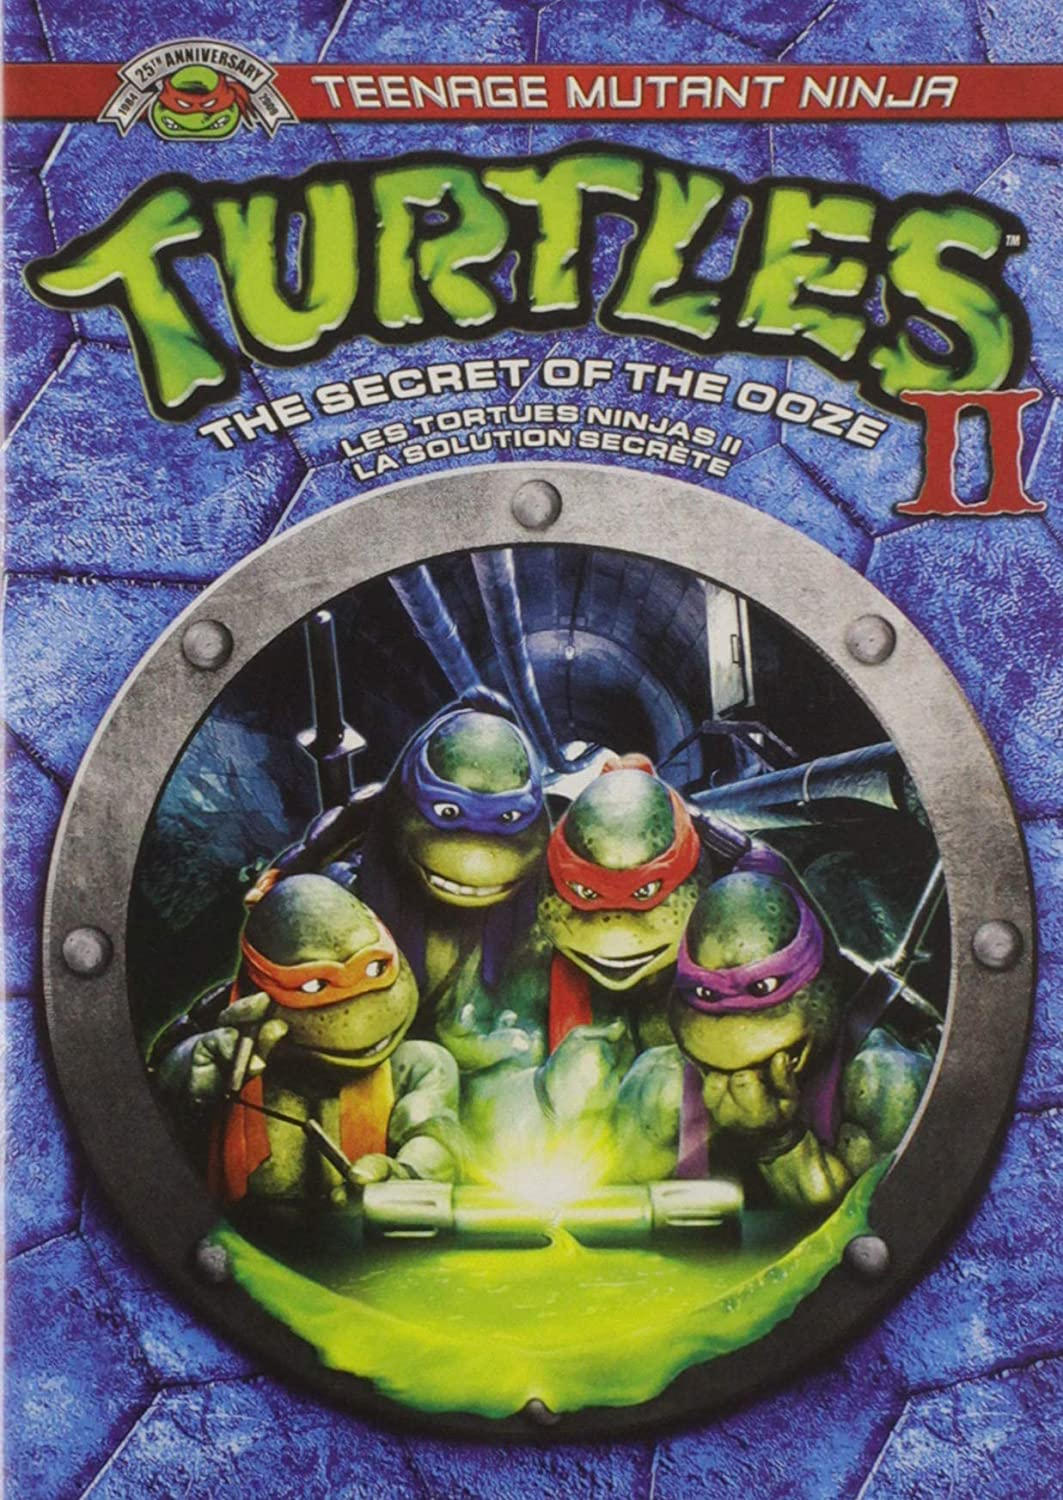 Amazon.com: Teenage Mutant Ninja: Turtles 2 - The Secret of ...